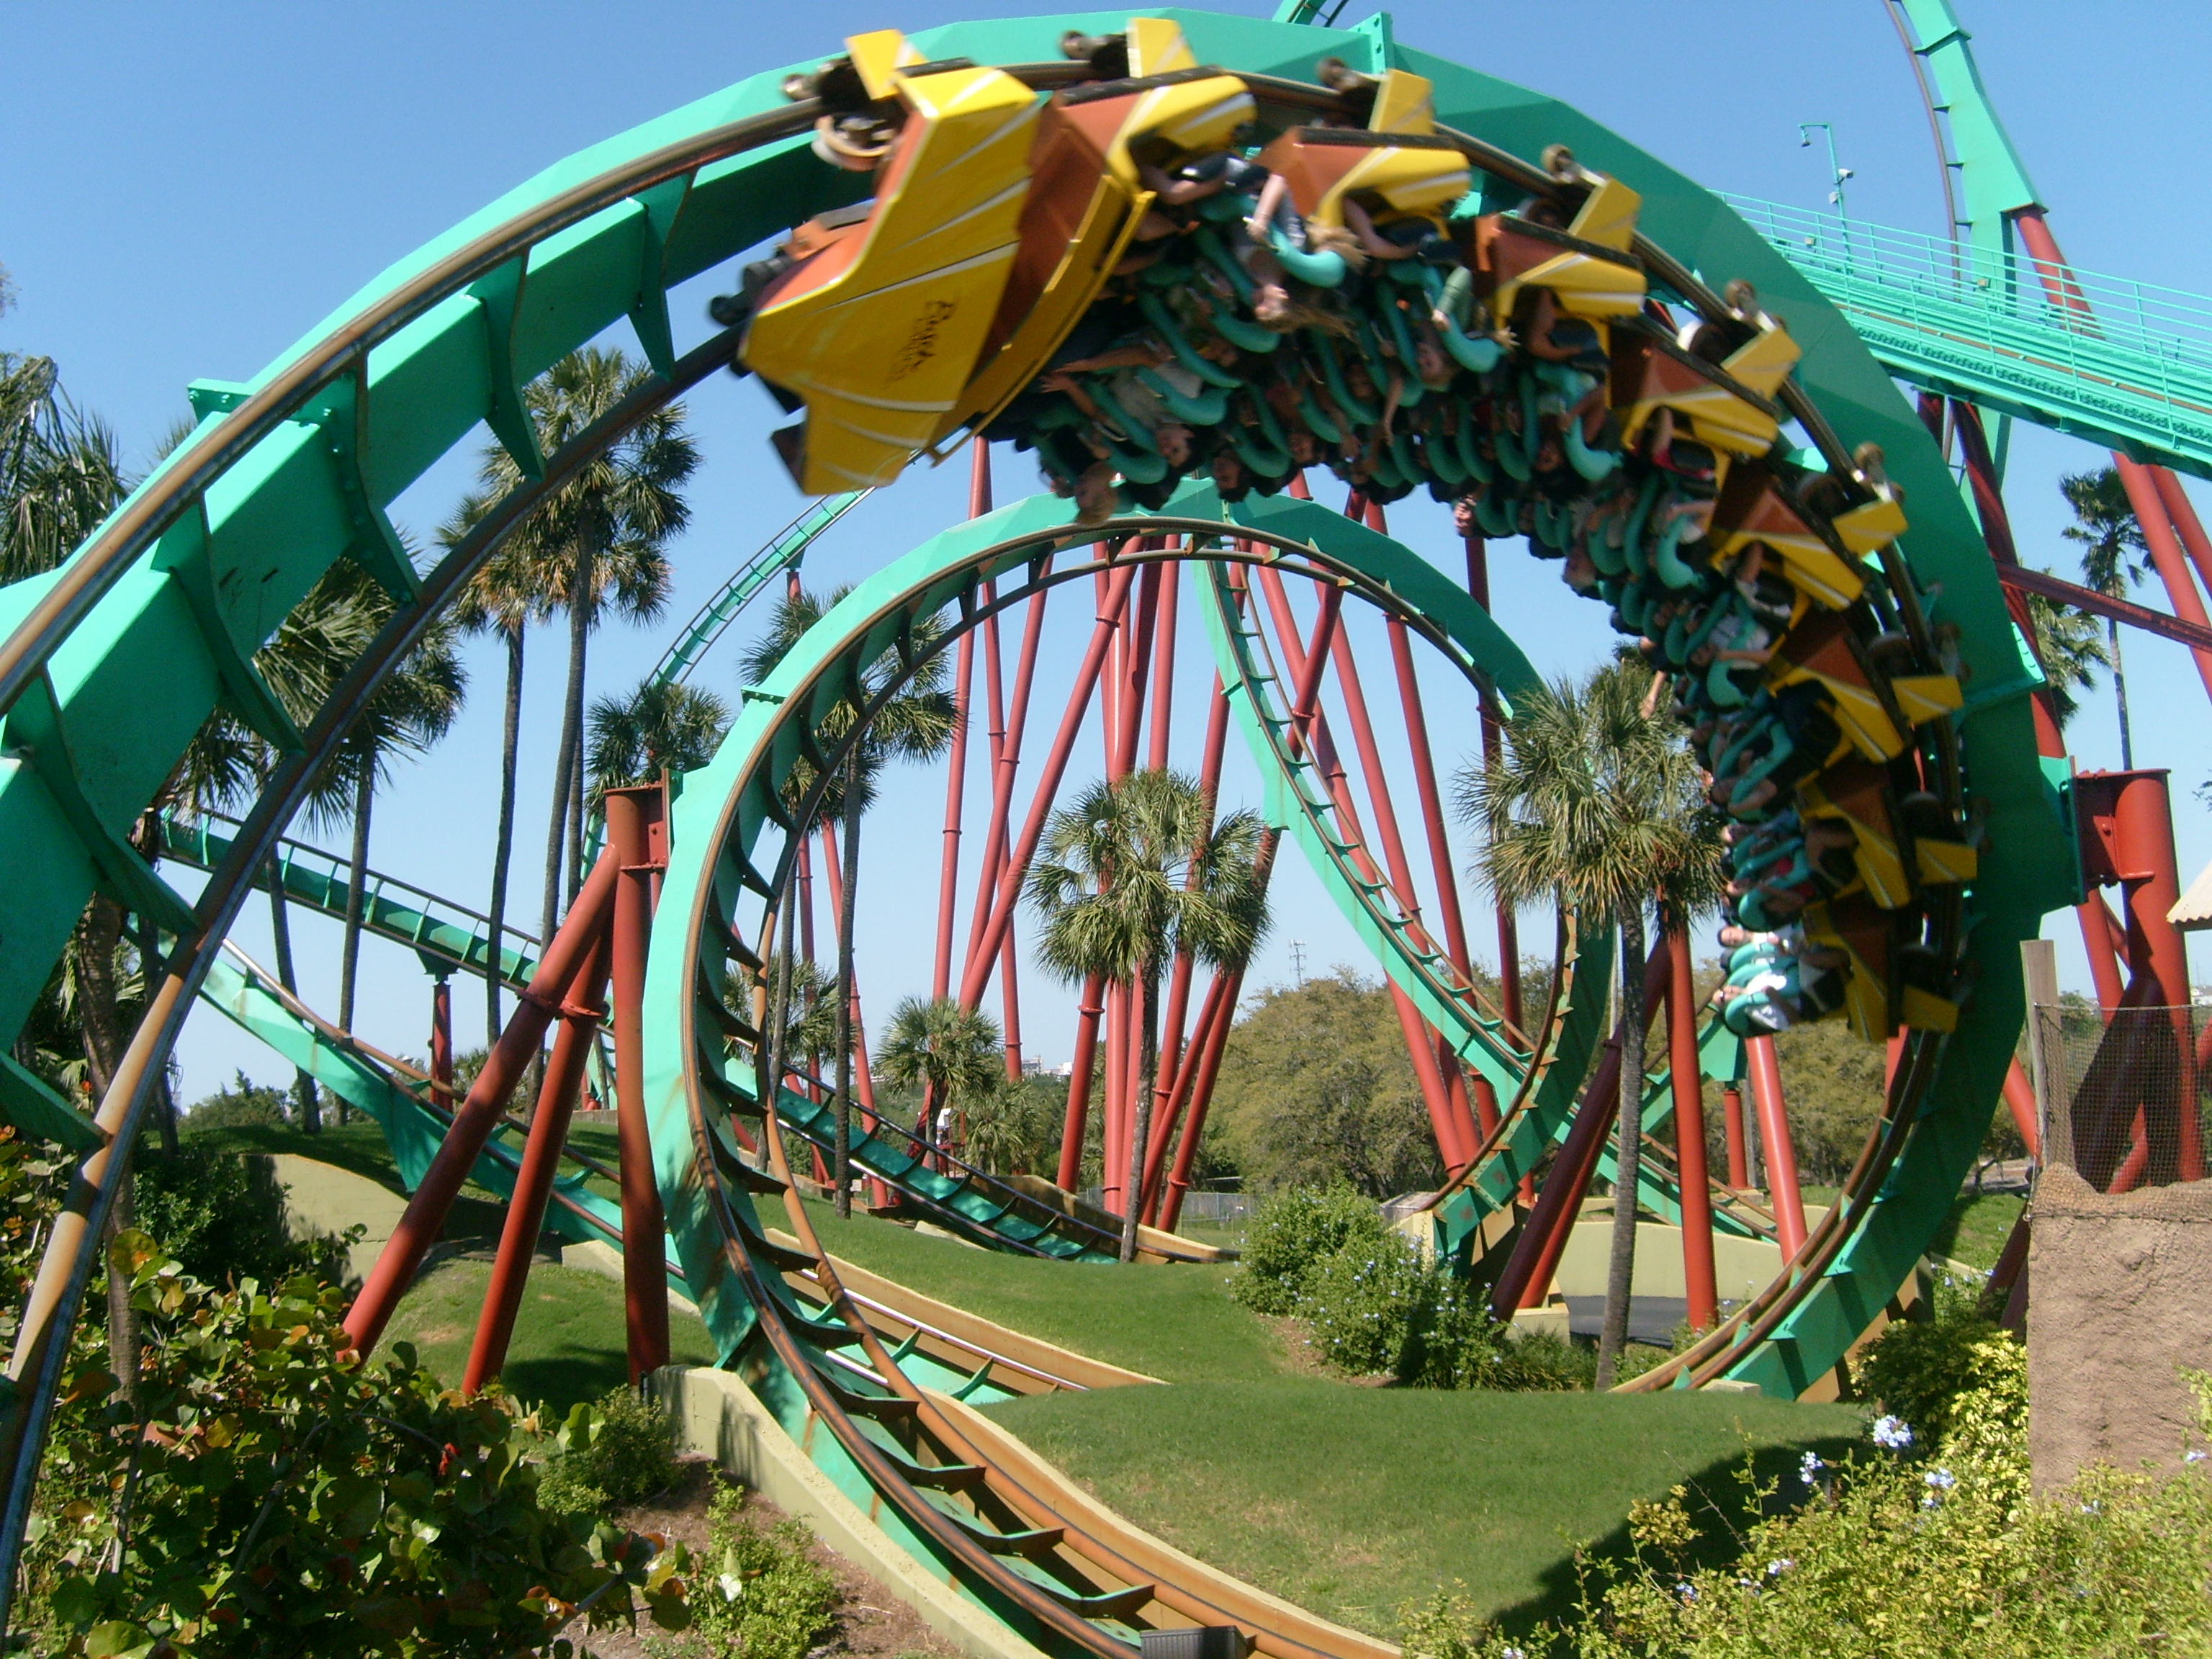 Behind the Thrills Busch Gardens files for 2016 attraction but